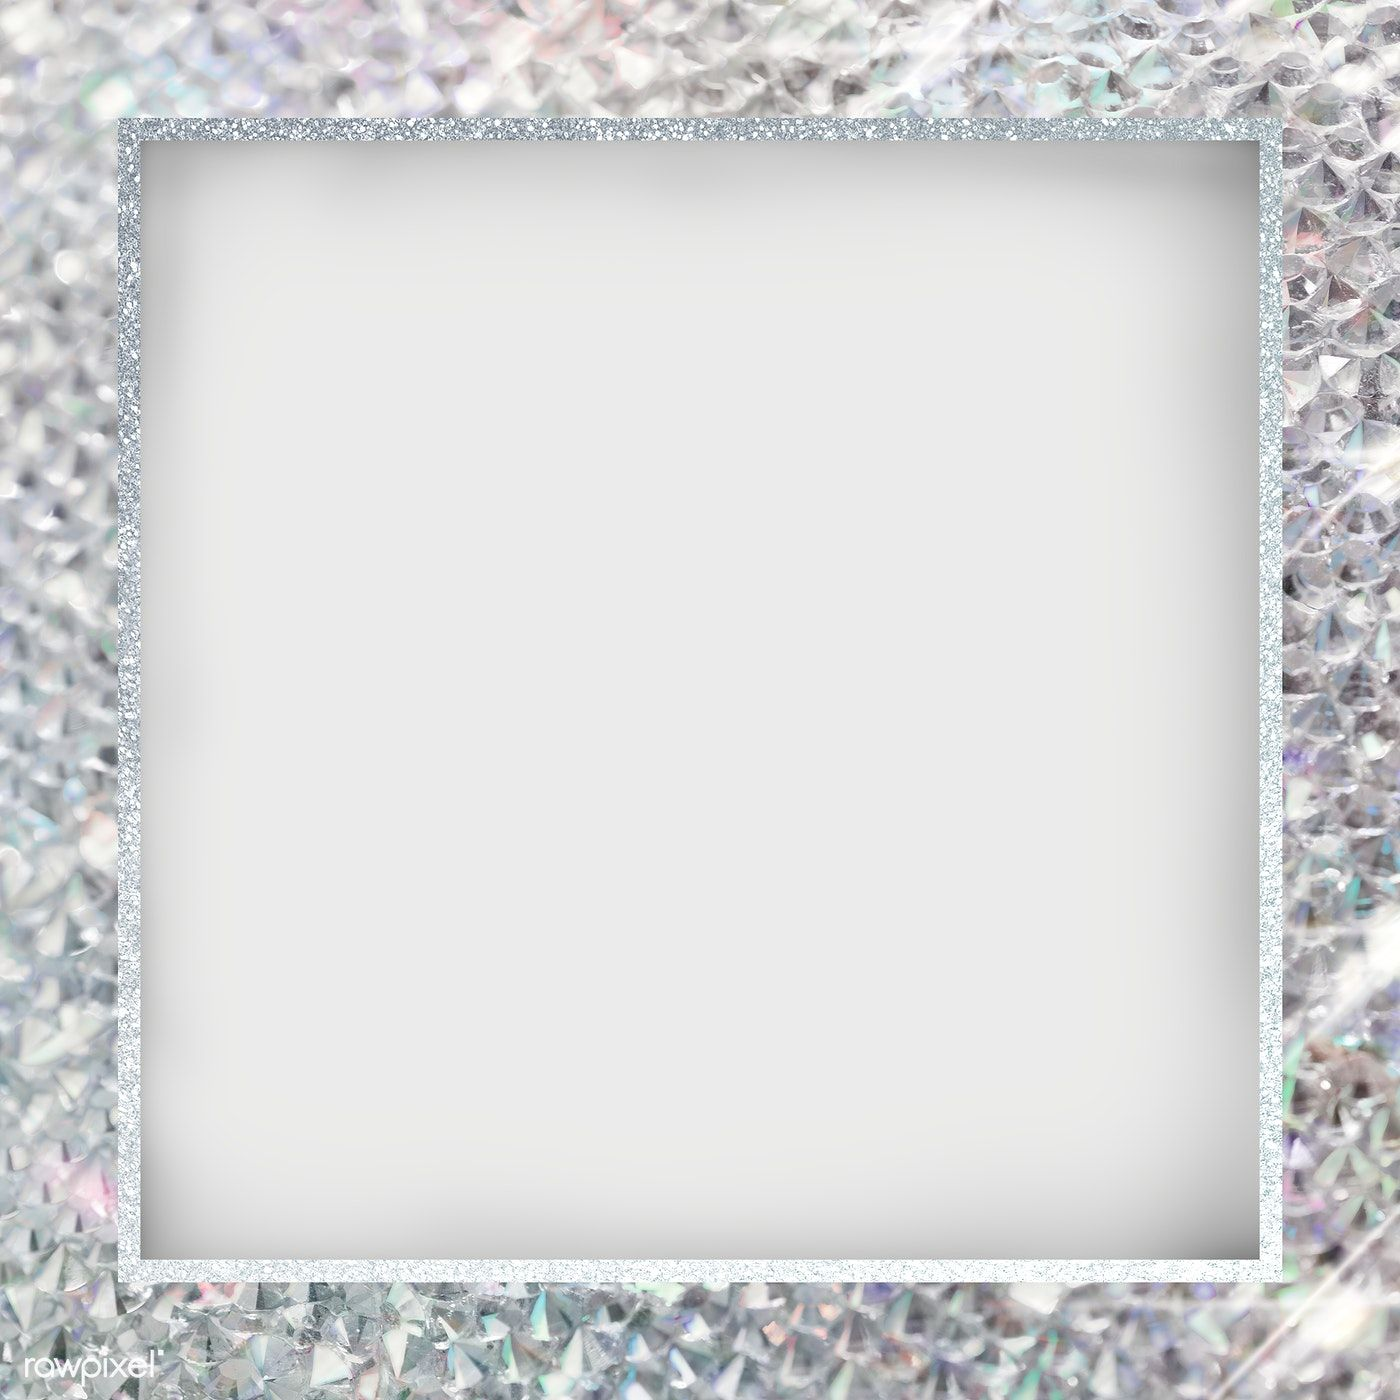 Silver Glittery Square Frame Transparent Png Premium Image By Rawpixel Com Manotang Pink Sparkle Background Glitter Background Square Frames